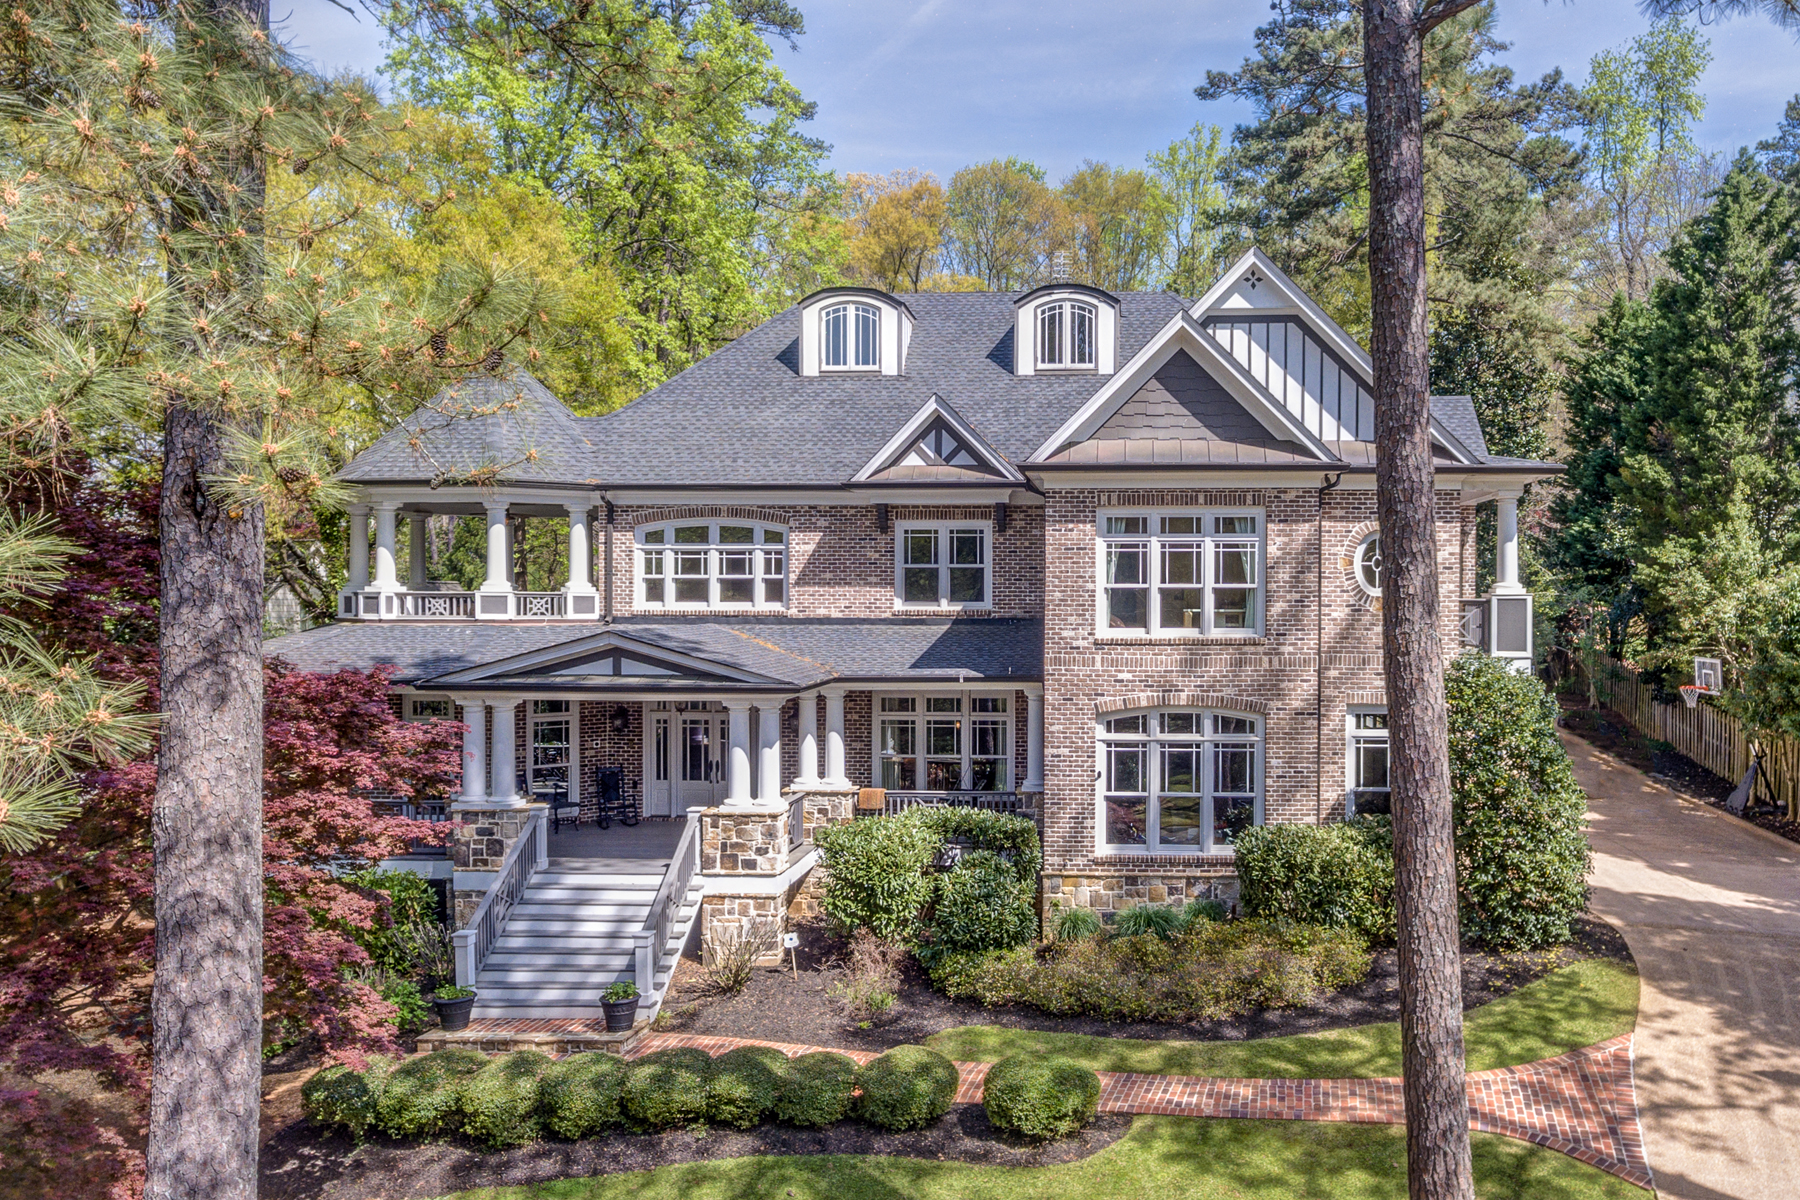 Moradia para Venda às Beautiful Custom Home On Secluded One Acre Lot In Brookhaven 4650 Club Valley Drive NE Atlanta, Geórgia 30319 Estados Unidos